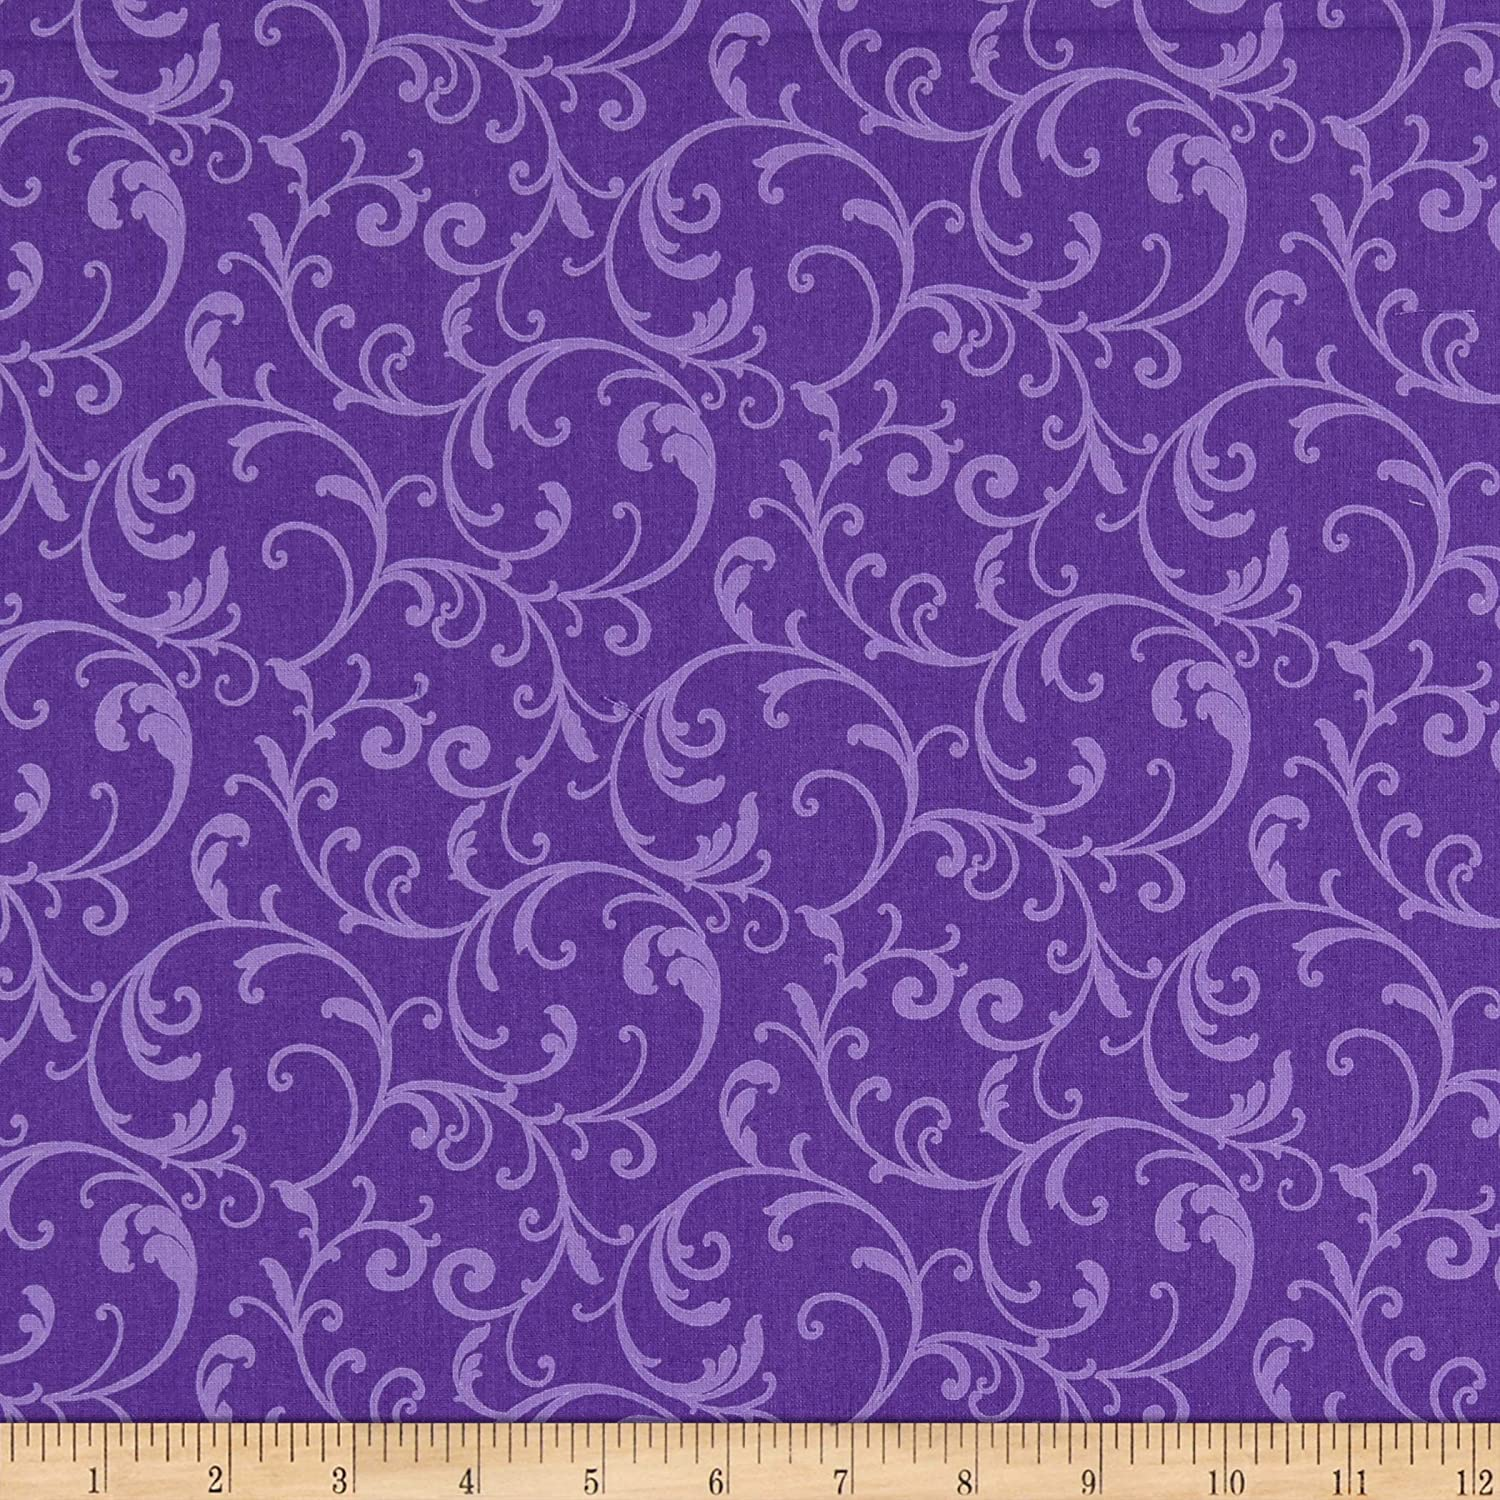 Benartex Classic Scrolls And Blenders Classic Scroll Purple Quilt Fabric By The Yard